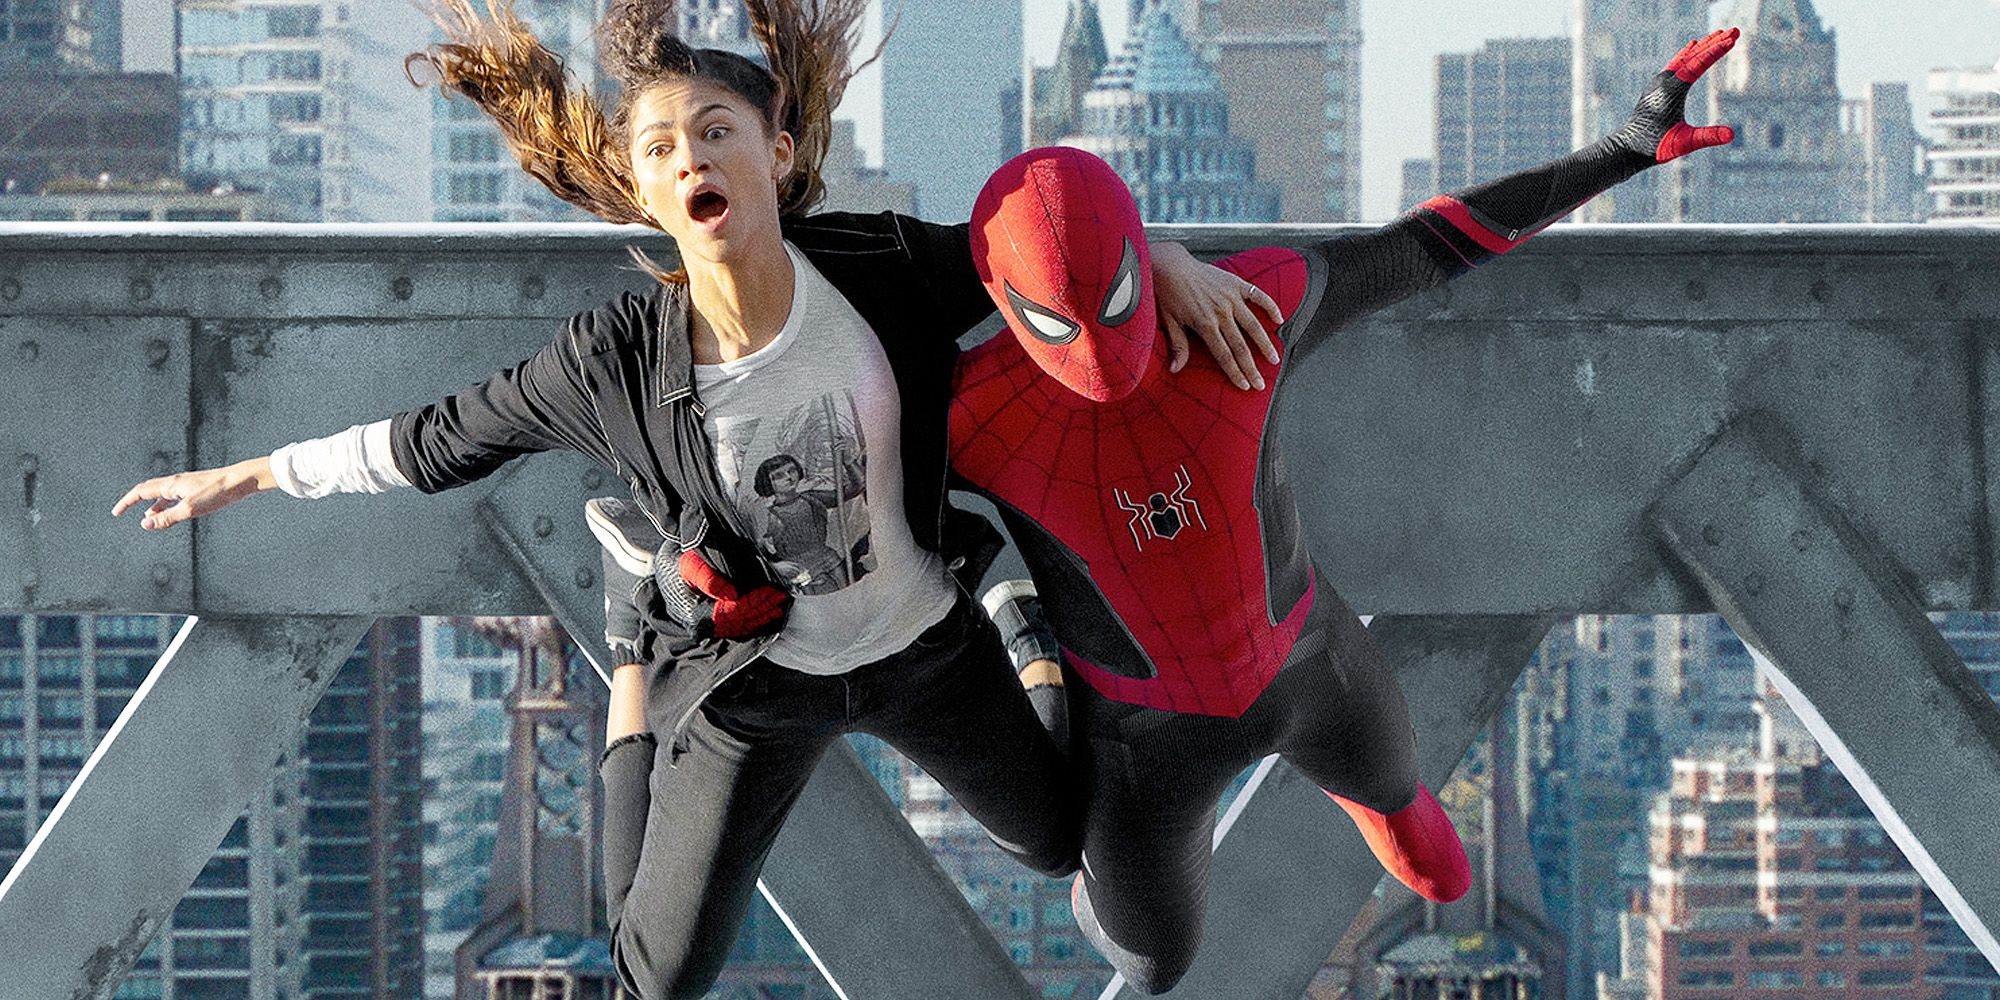 MCU Spider-Man 4 would be different from the Homecoming trilogy